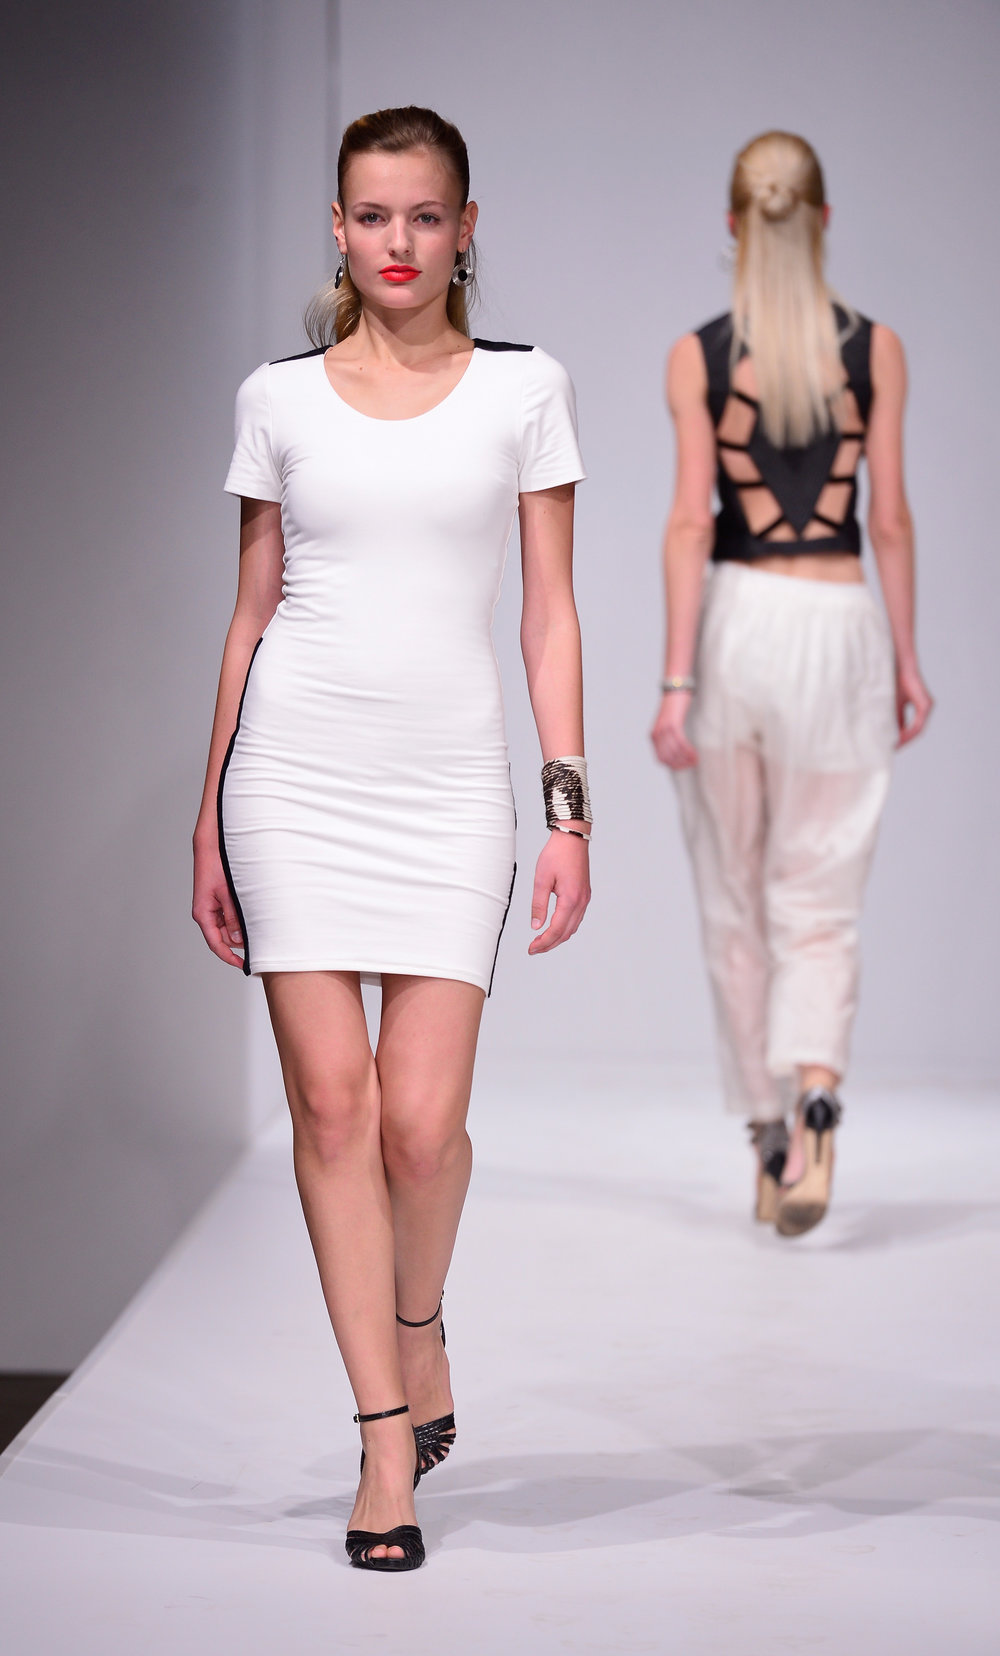 MBFW_GreenShowroom_Vada[1].jpg